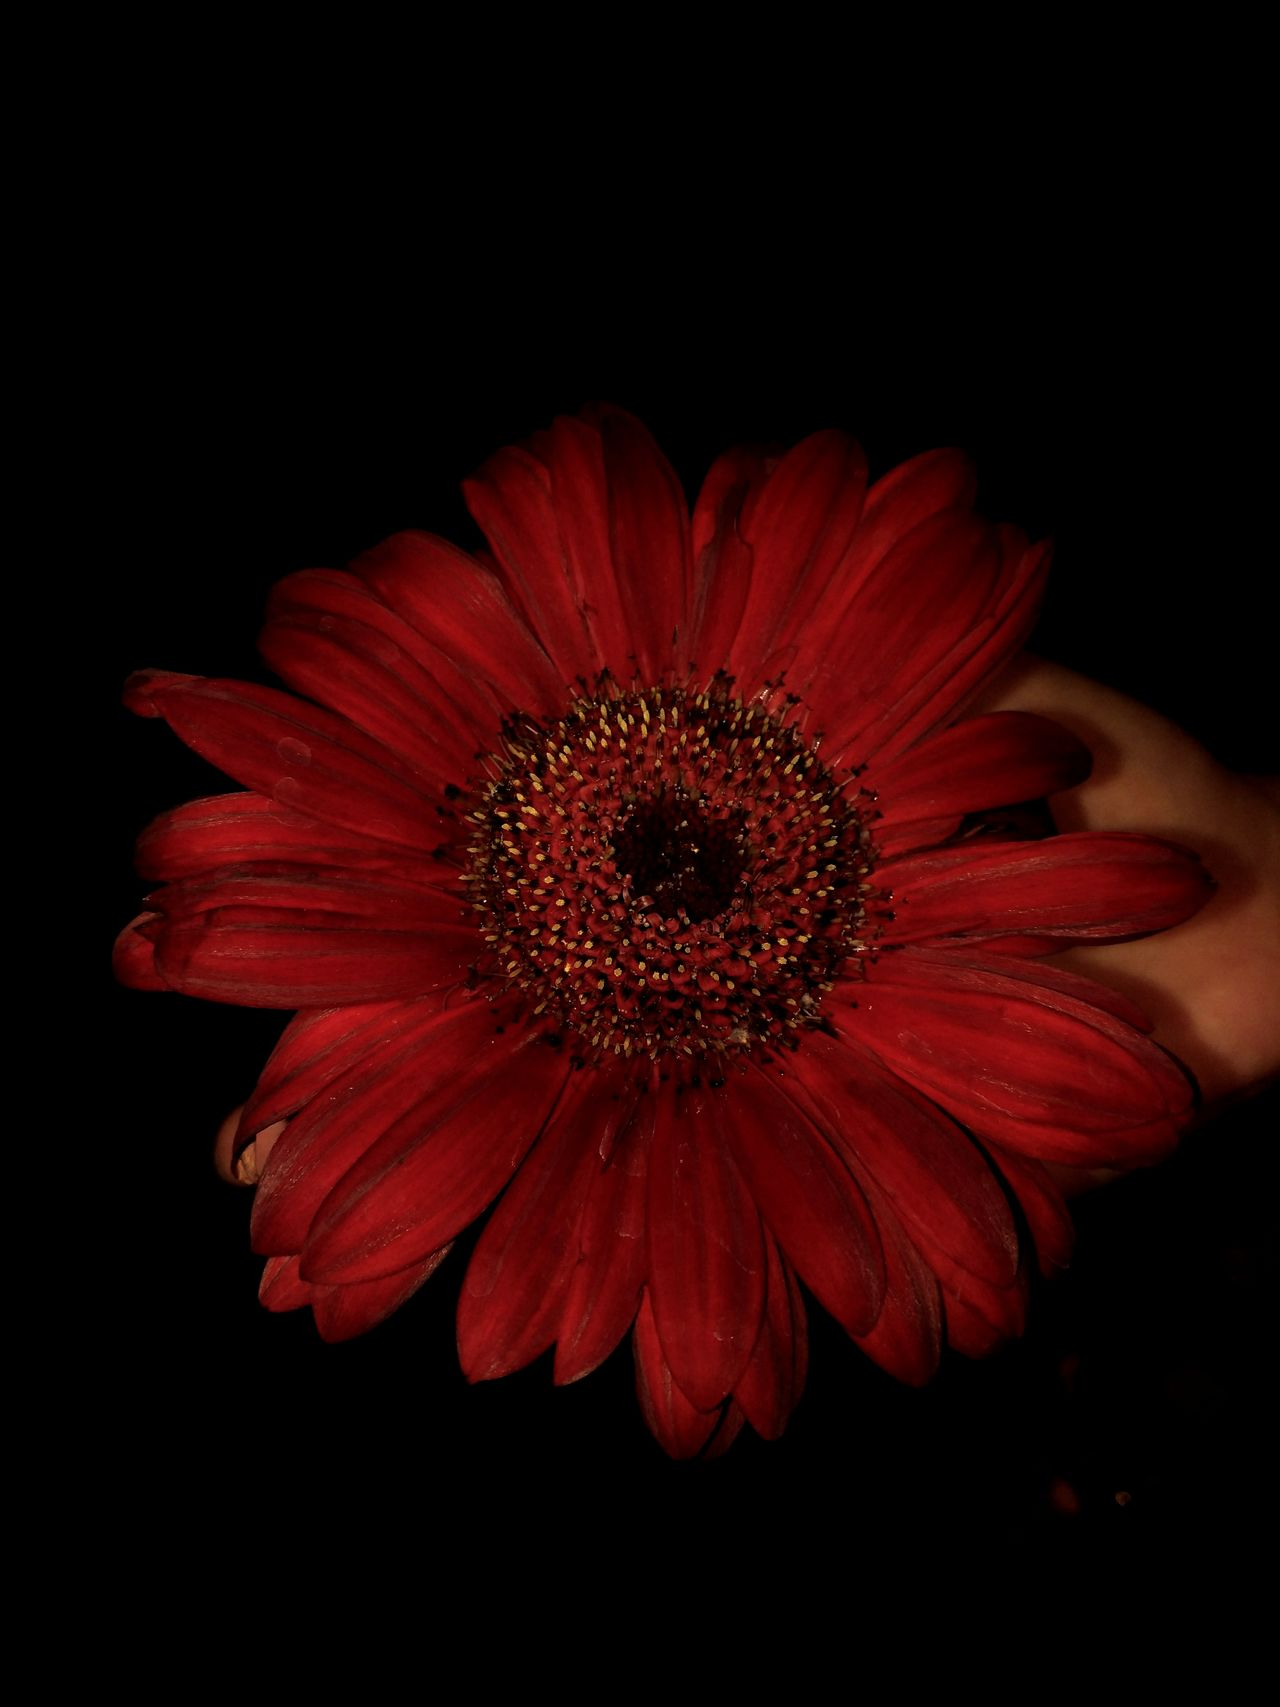 Flower Petal Flower Head Fragility Black Background Red Beauty In Nature Plant Close-up Freshness Nature Studio Shot Beauty No People Day Outdoors